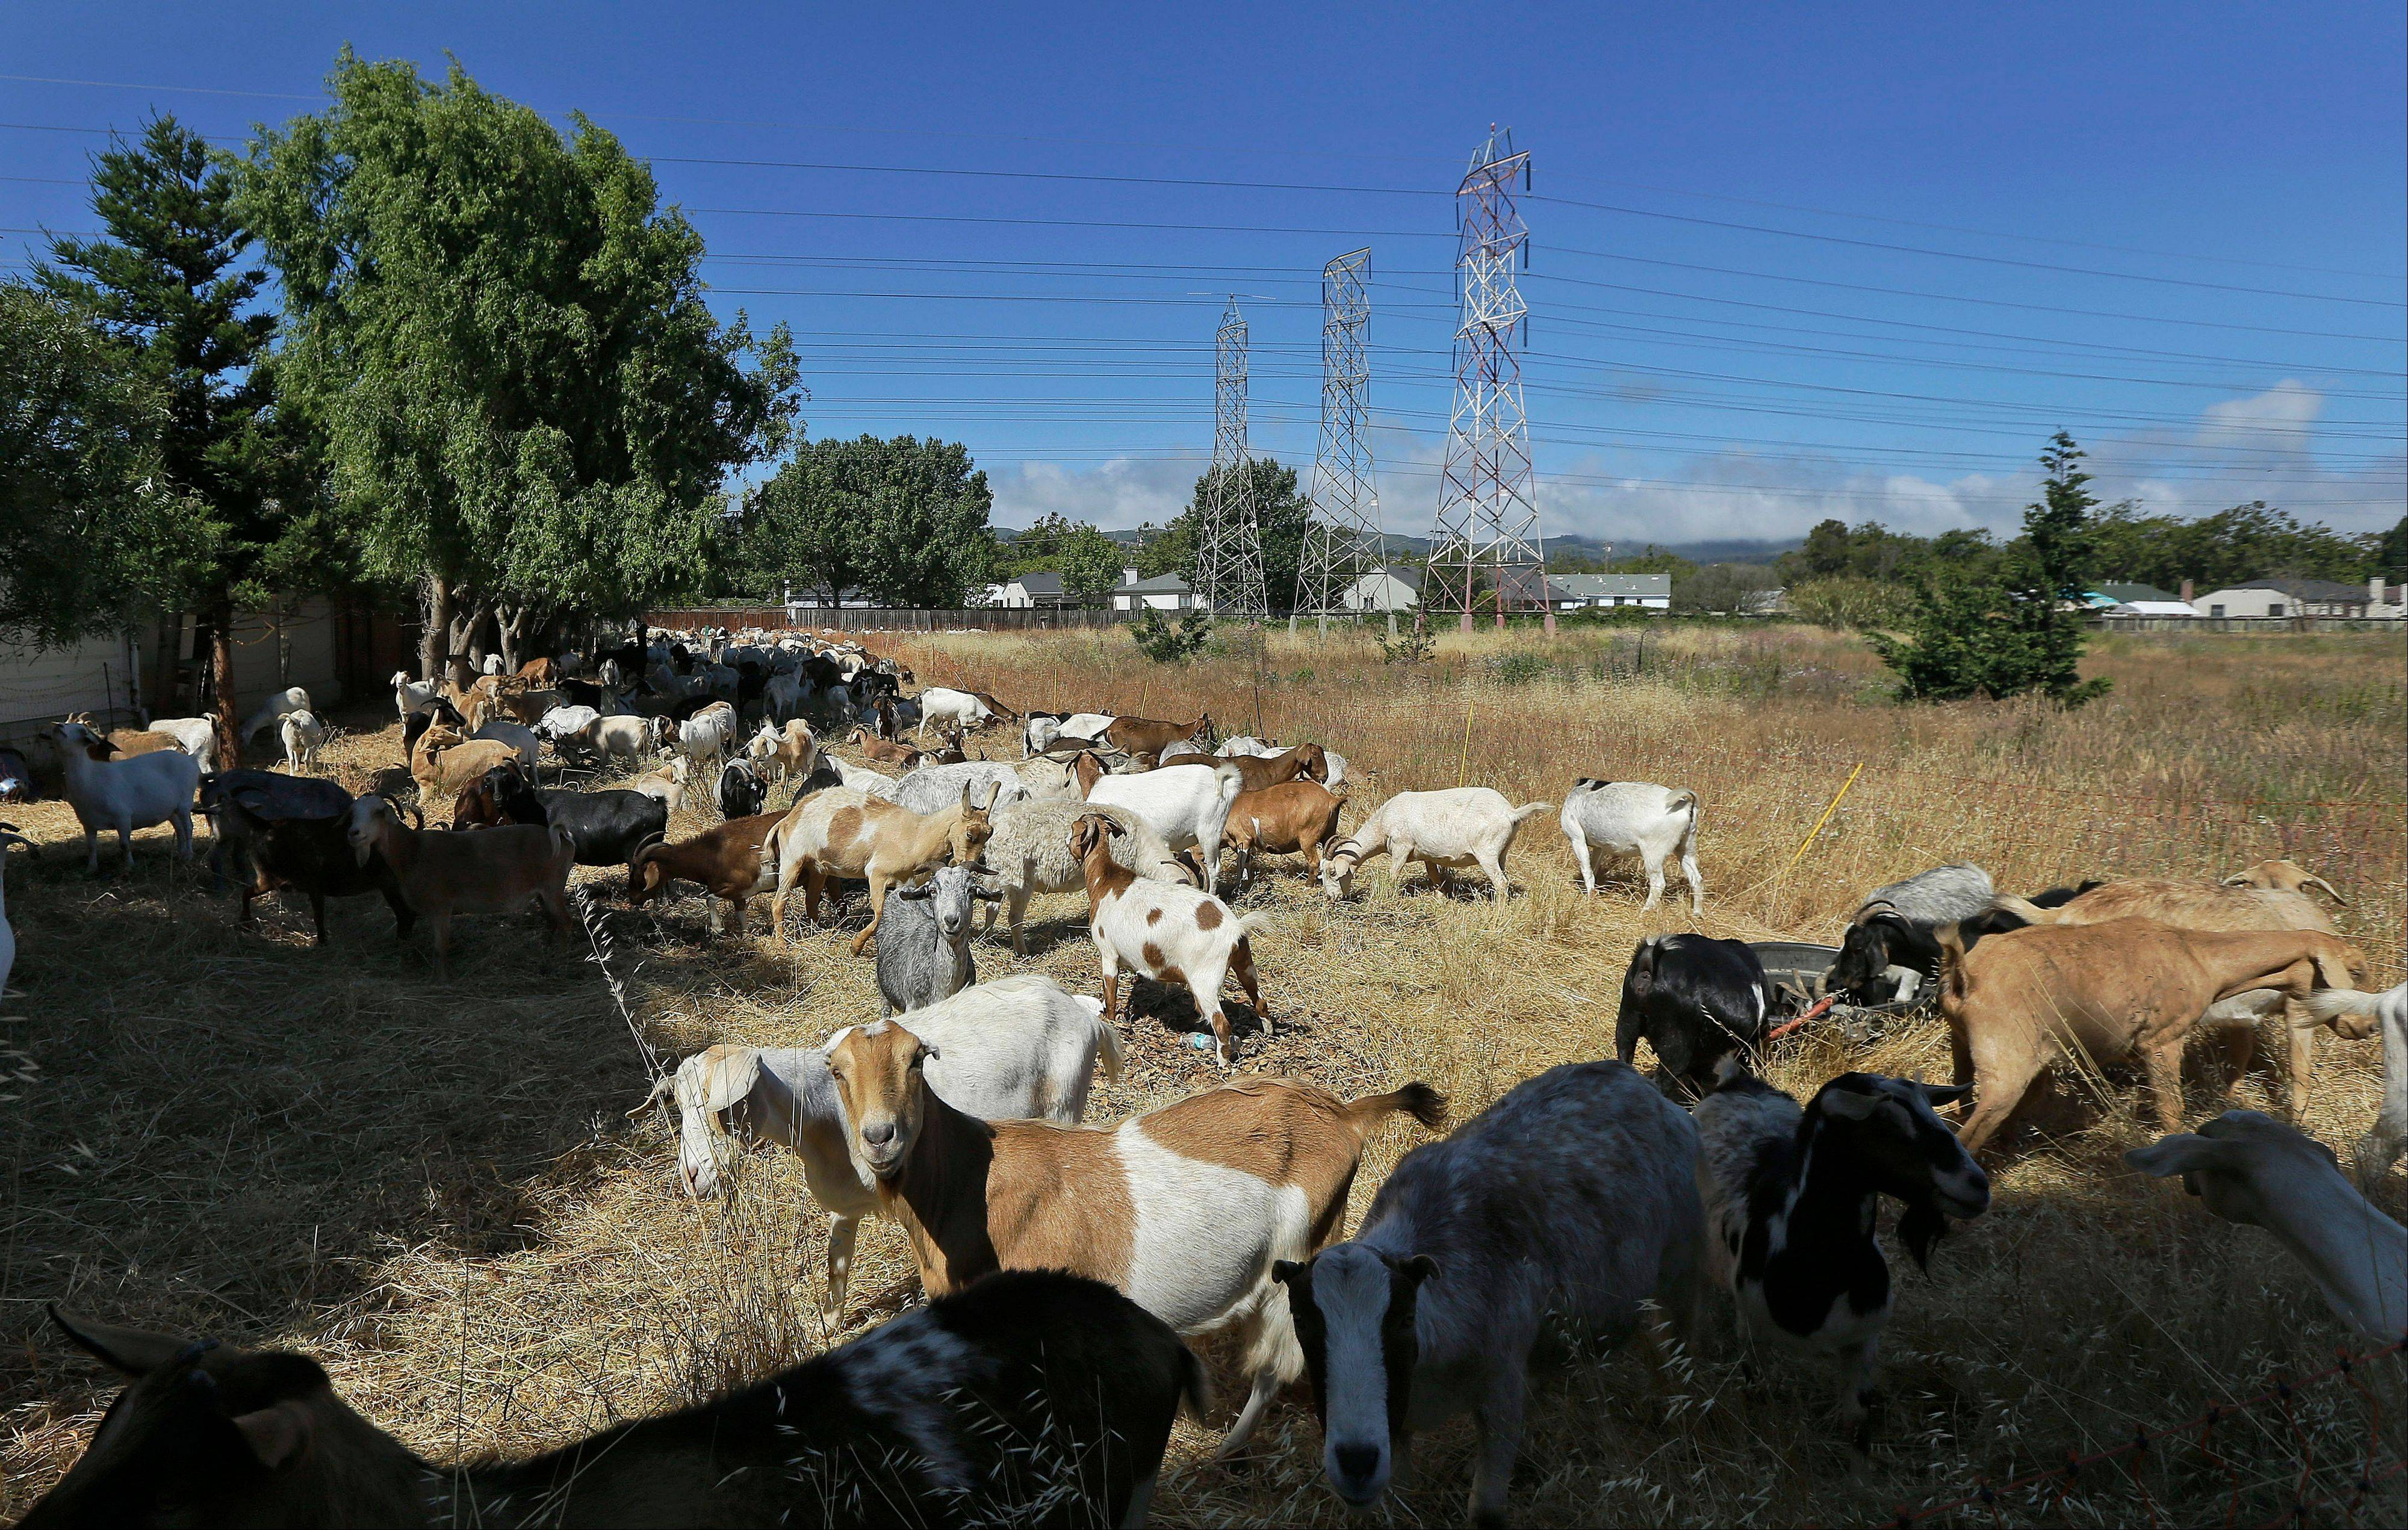 In this Wednesday, June 19, 2013, photo, goats graze on a patch of San Francisco International Airport land in San Francisco. San Francisco airport is using 400 goats to clear from an area of the airport prone to fire. (AP Photo/Jeff Chiu)